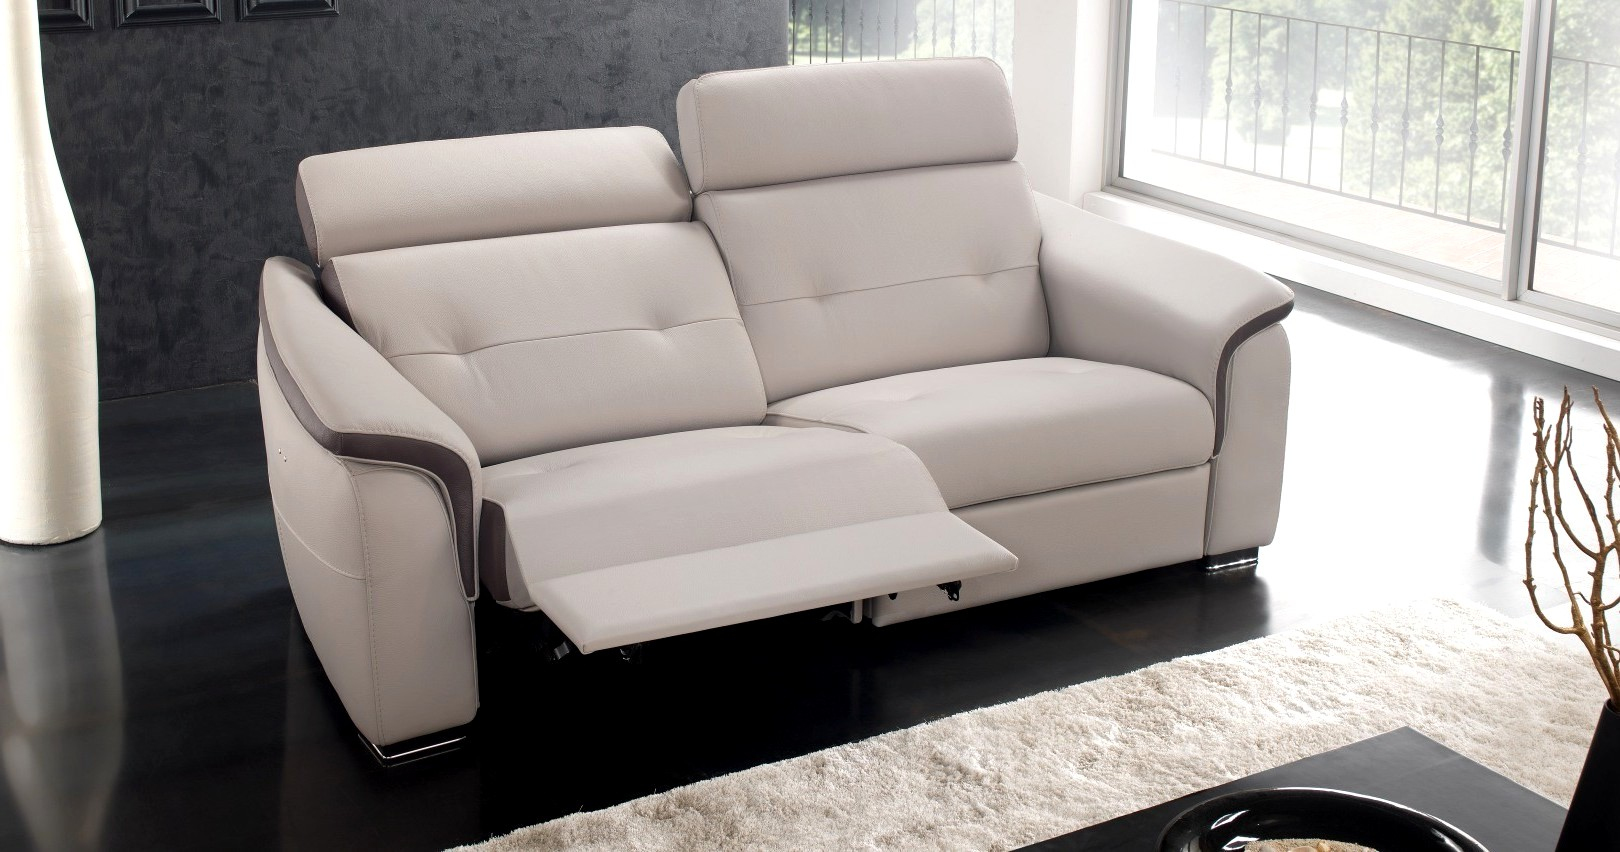 Canape Angle but Gris Luxe Photographie Canape Cuir Relax 11 59b1167a